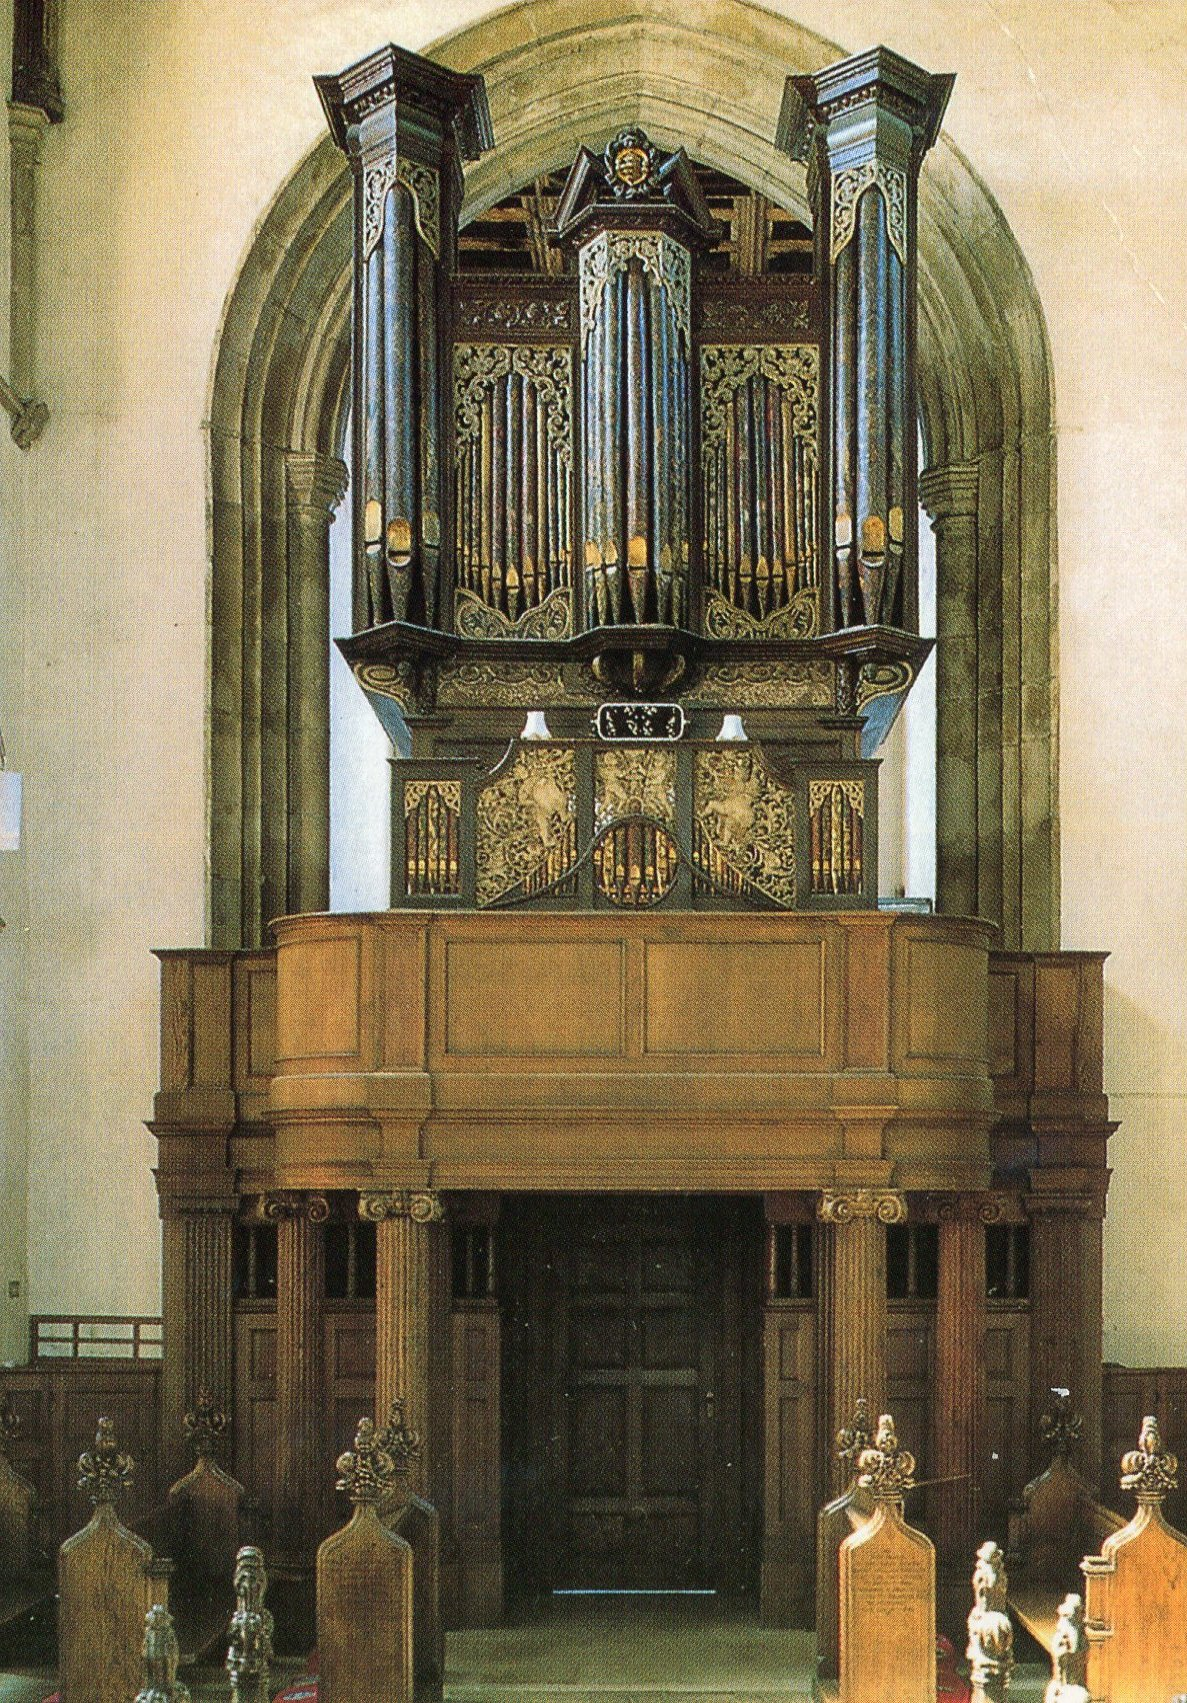 The Thamar organ